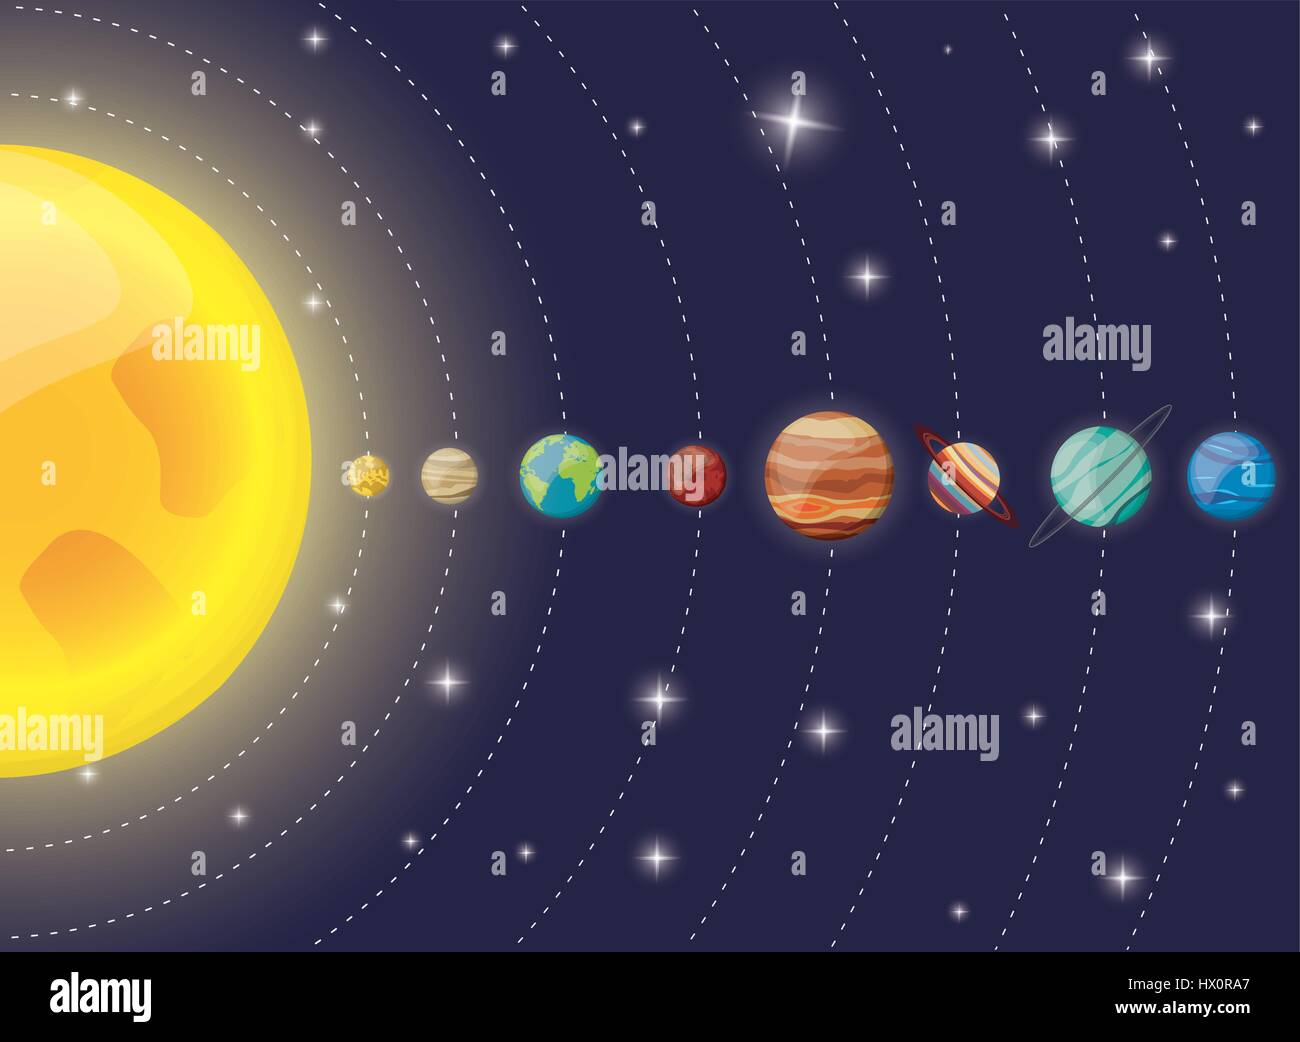 solar system planets sun diagram stock vector art illustration rh alamy com solar system diagram template solar system diagram blank